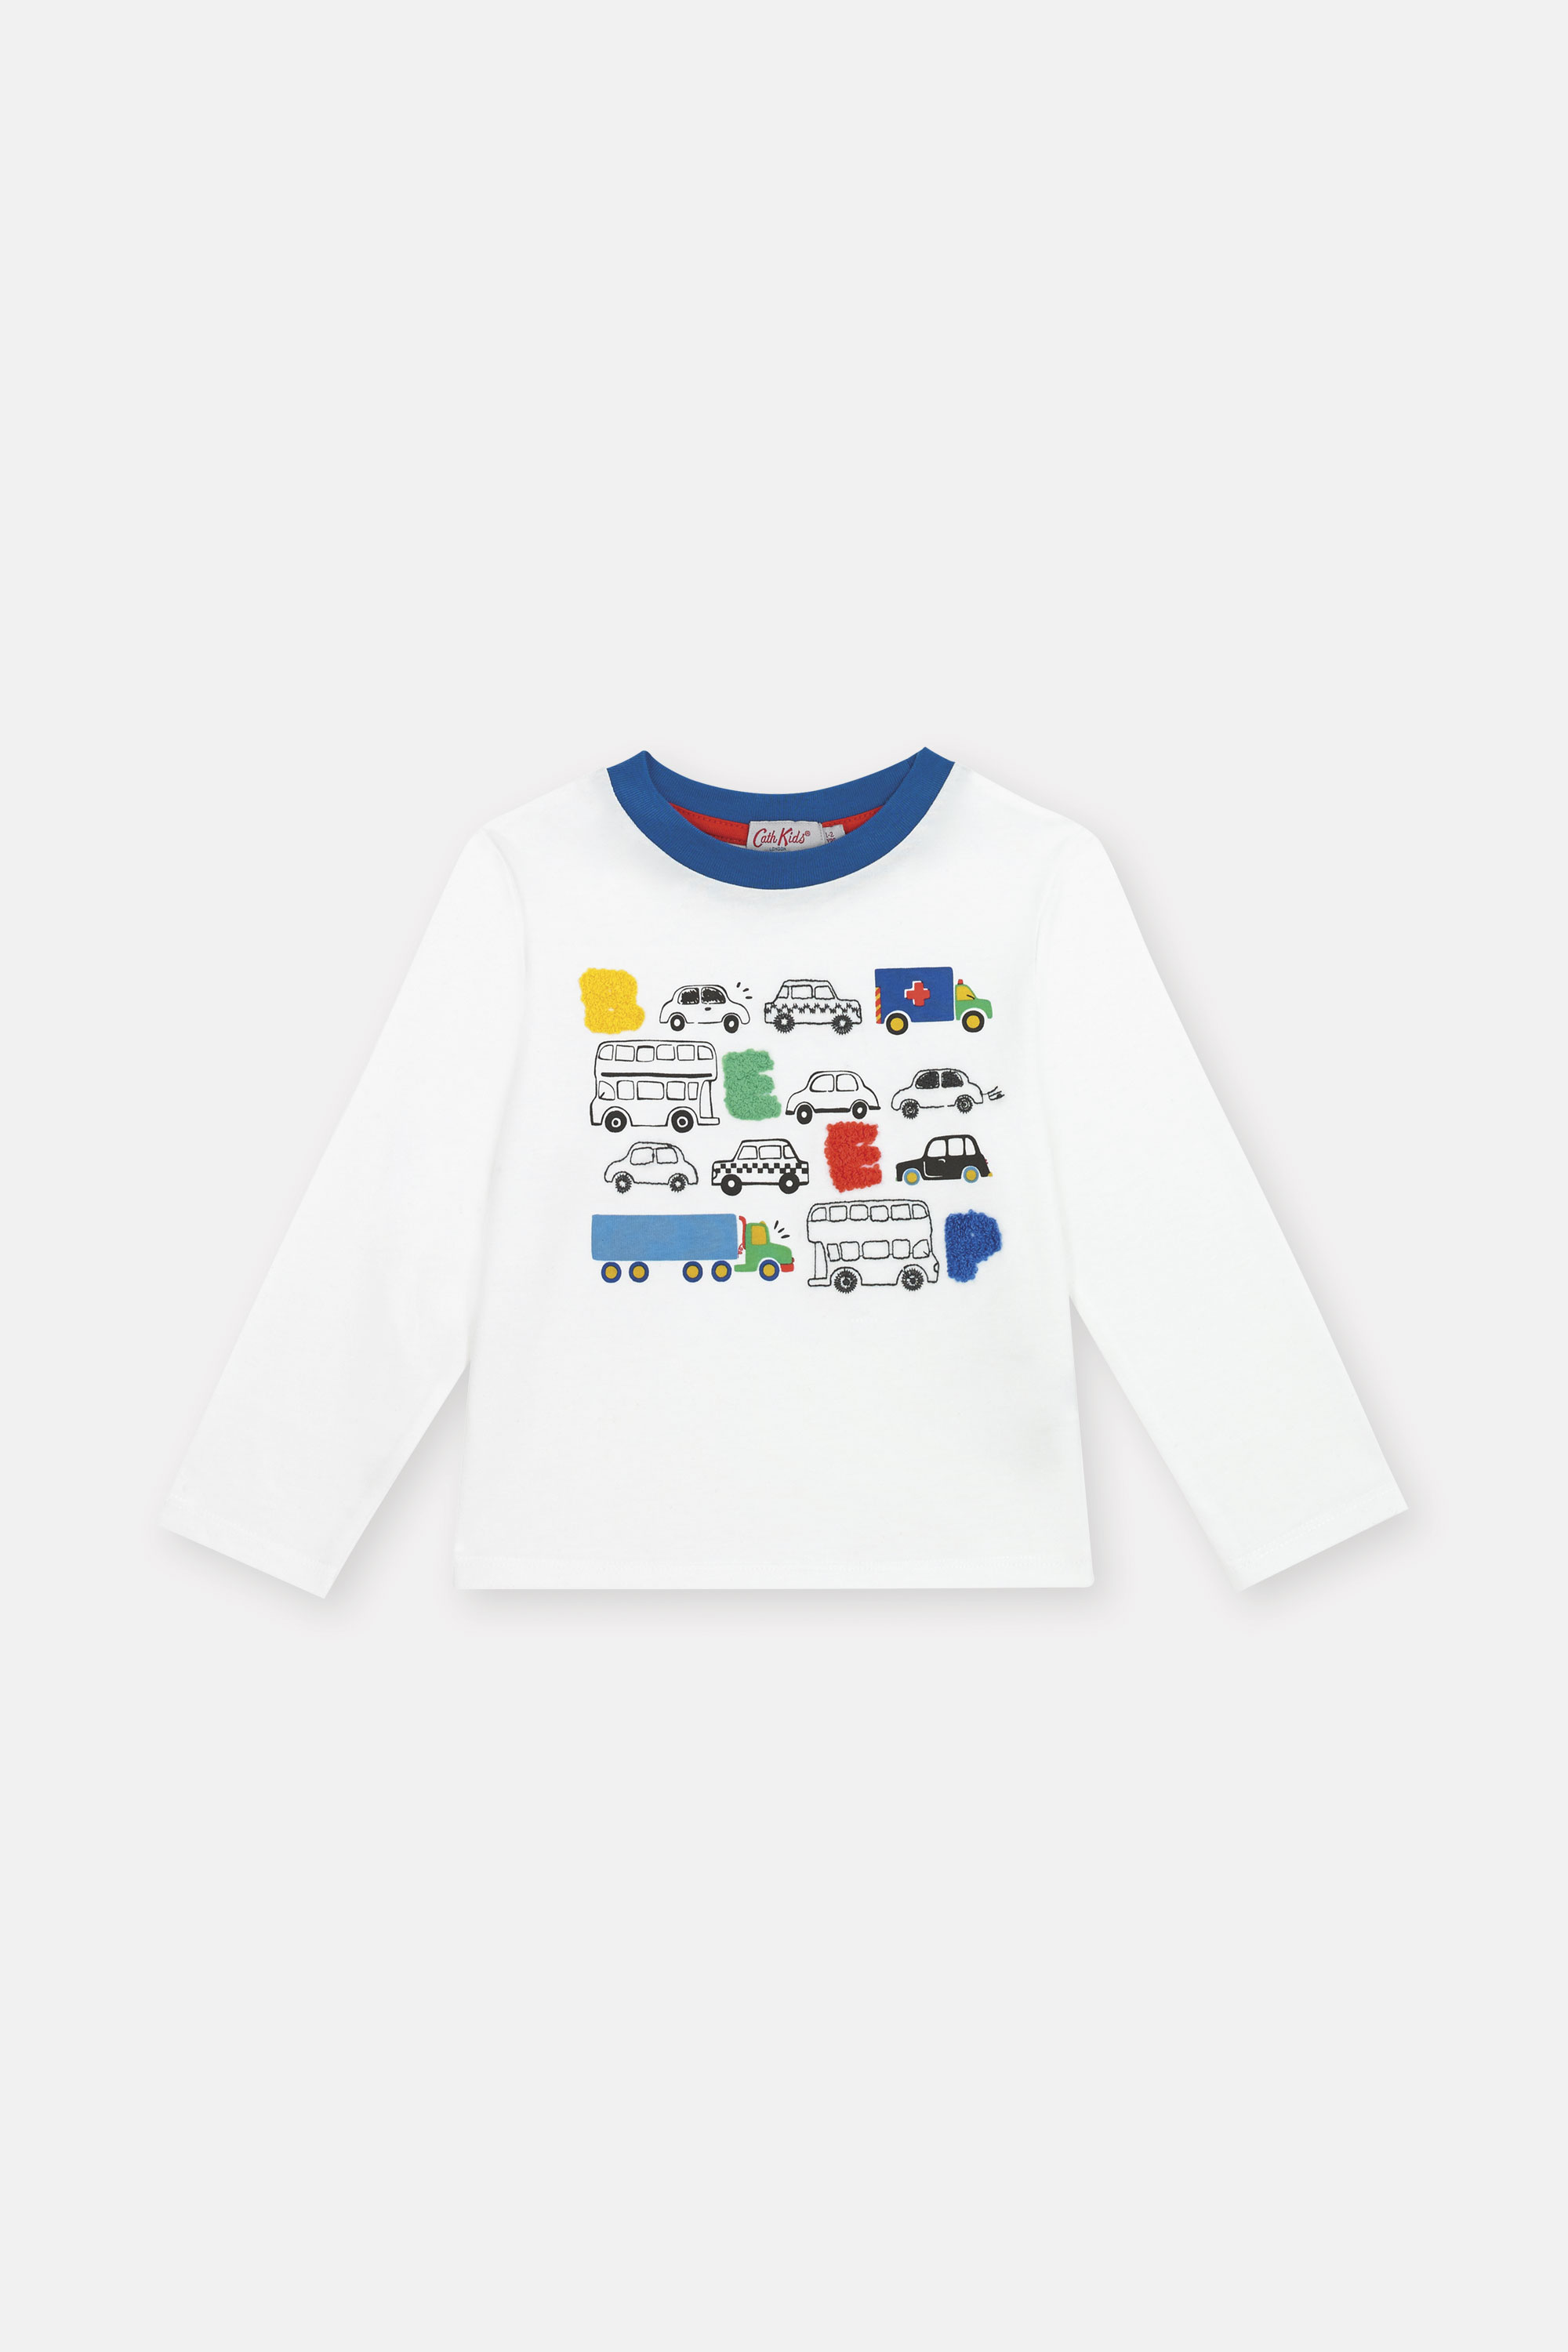 Cath Kidston Long Sleeve Everyday T-Shirt in Ivory, 5-6 yr